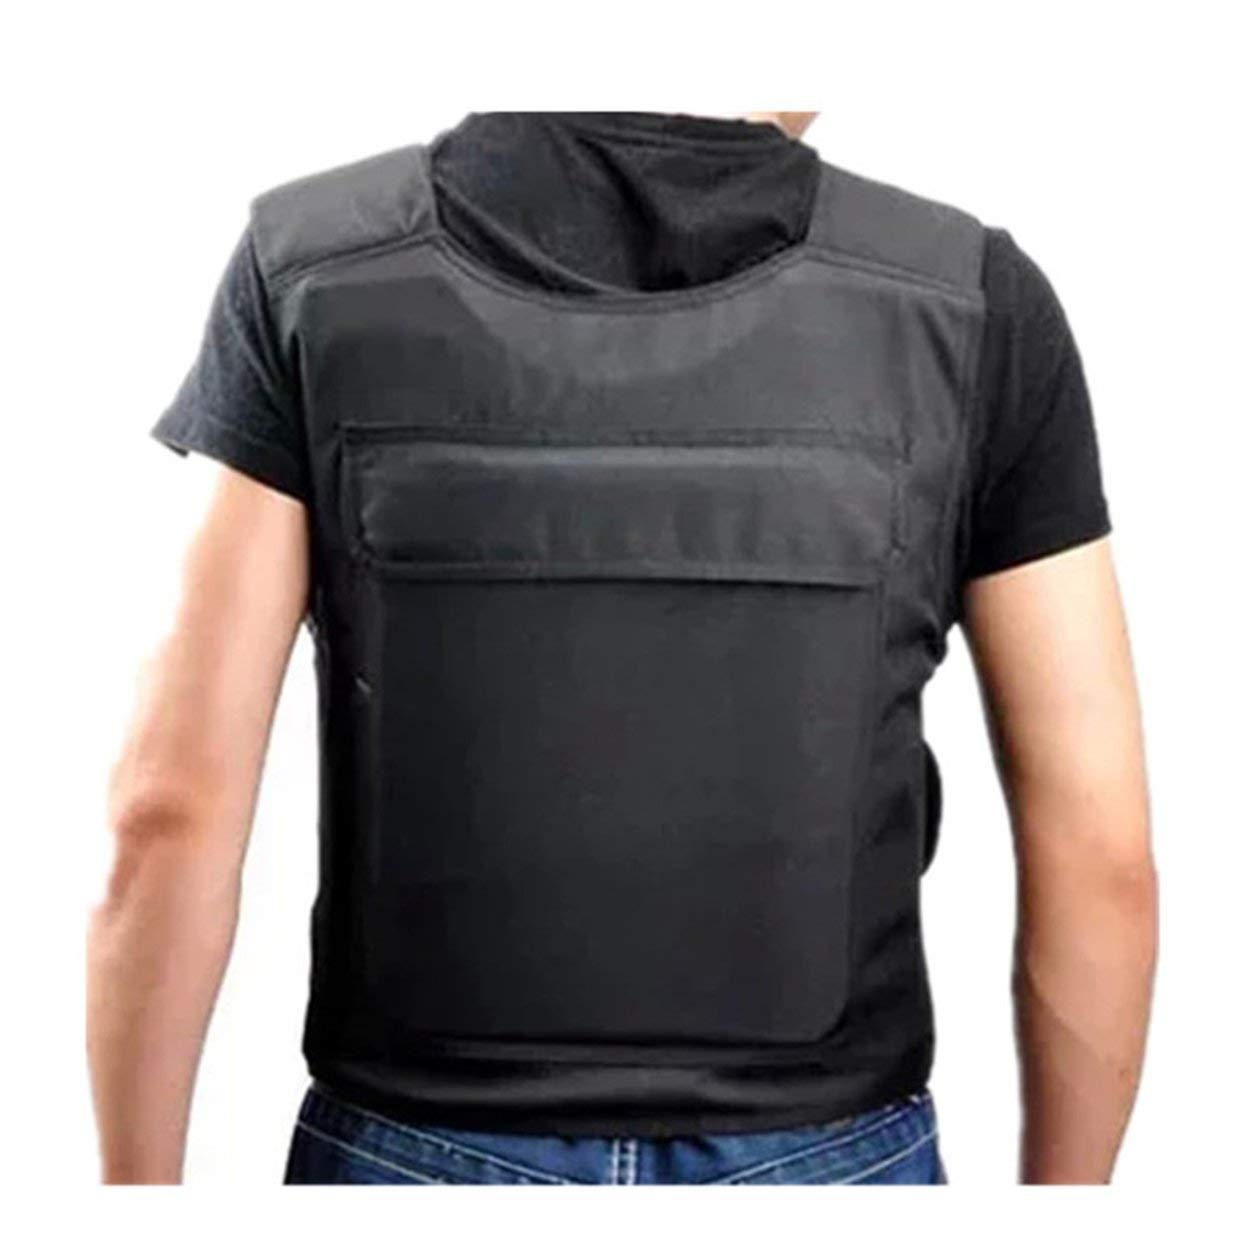 Lorenlli Portable Protective Vest with 15 Layers Soft Liner High Strength Cut-proof Coat Stab-resistant Clothing